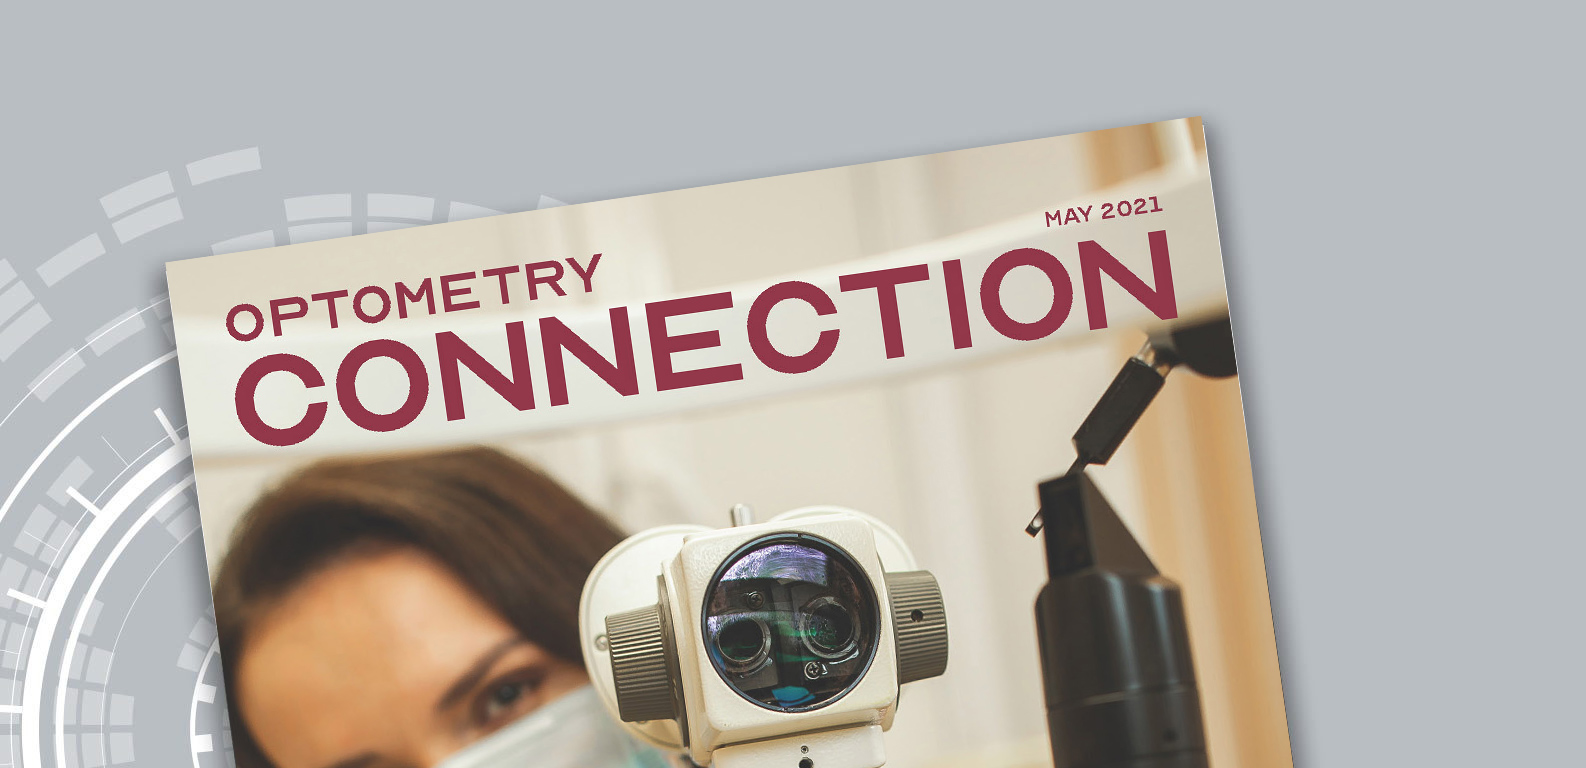 Optometry Connection